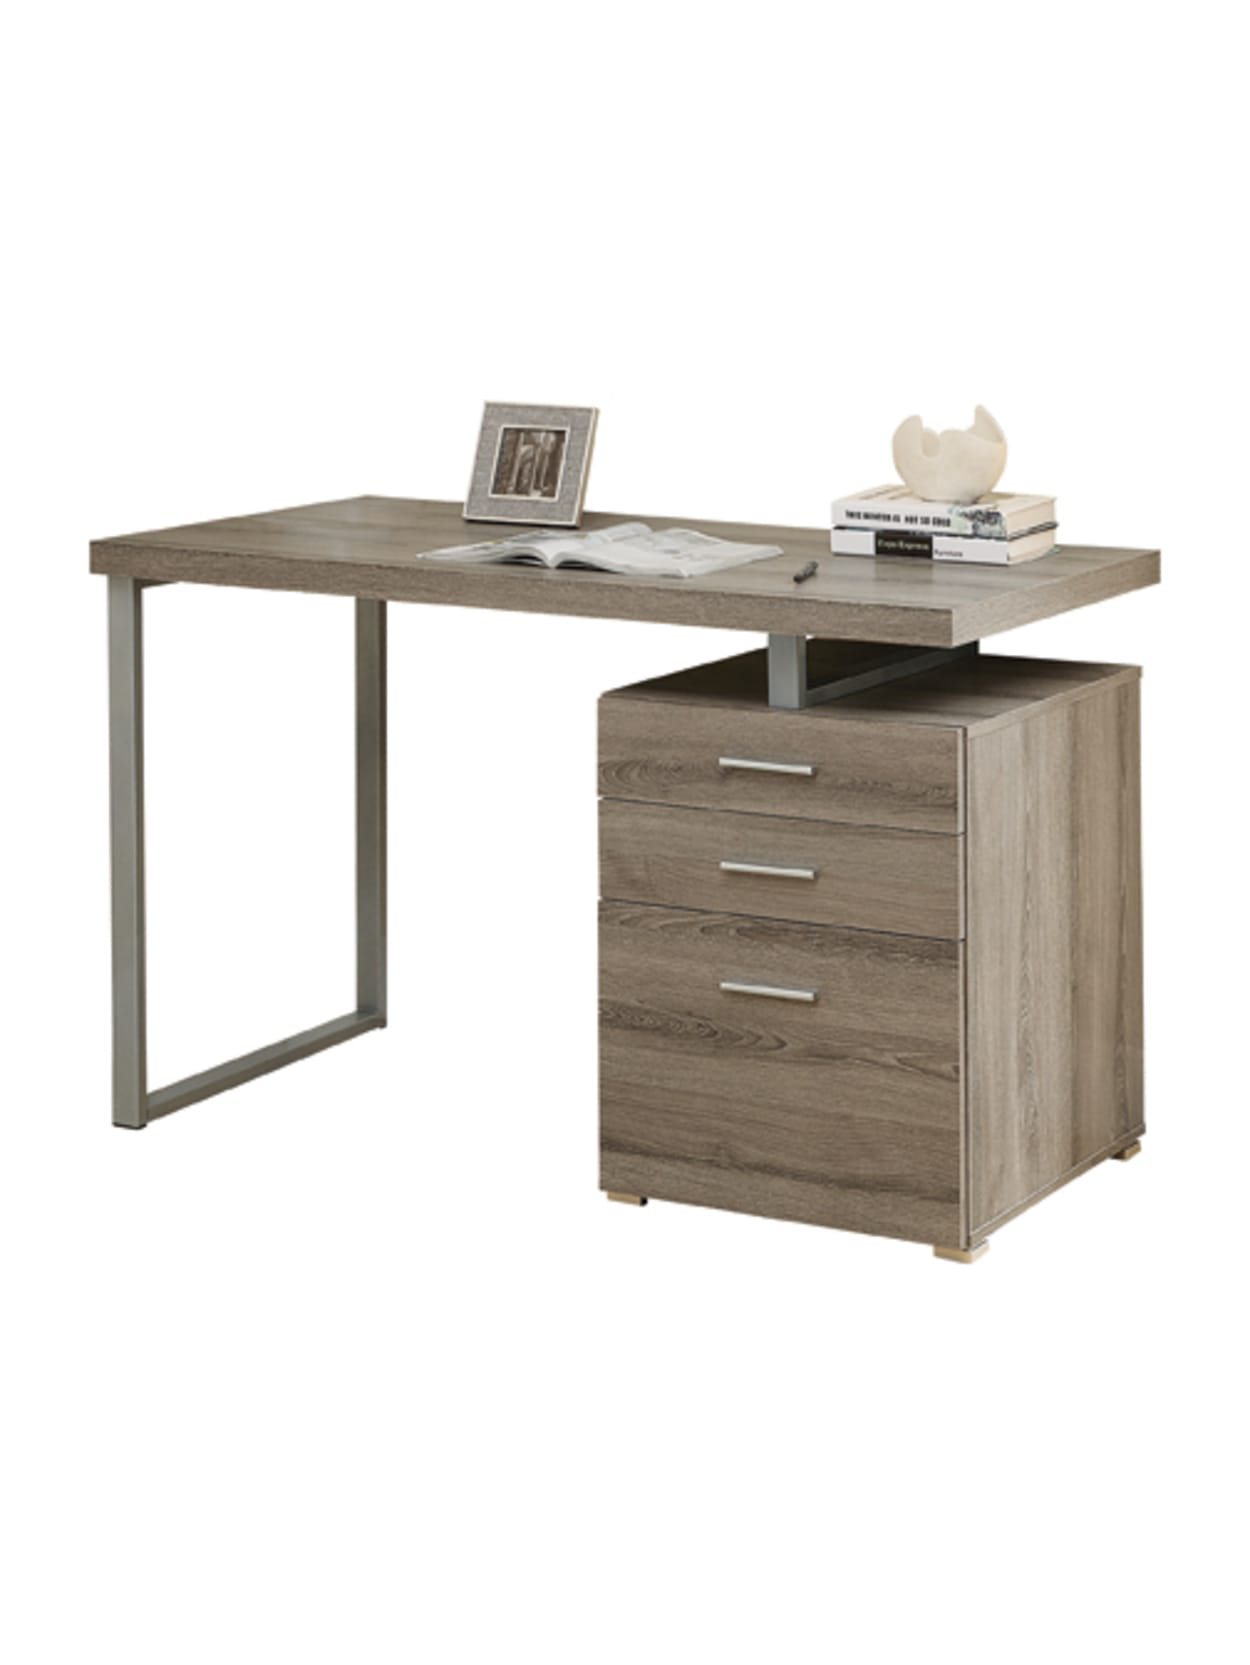 Monarch Specialties Floating Top Computer Desk With 49 Drawers, Dark Taupe  Item # 18524900